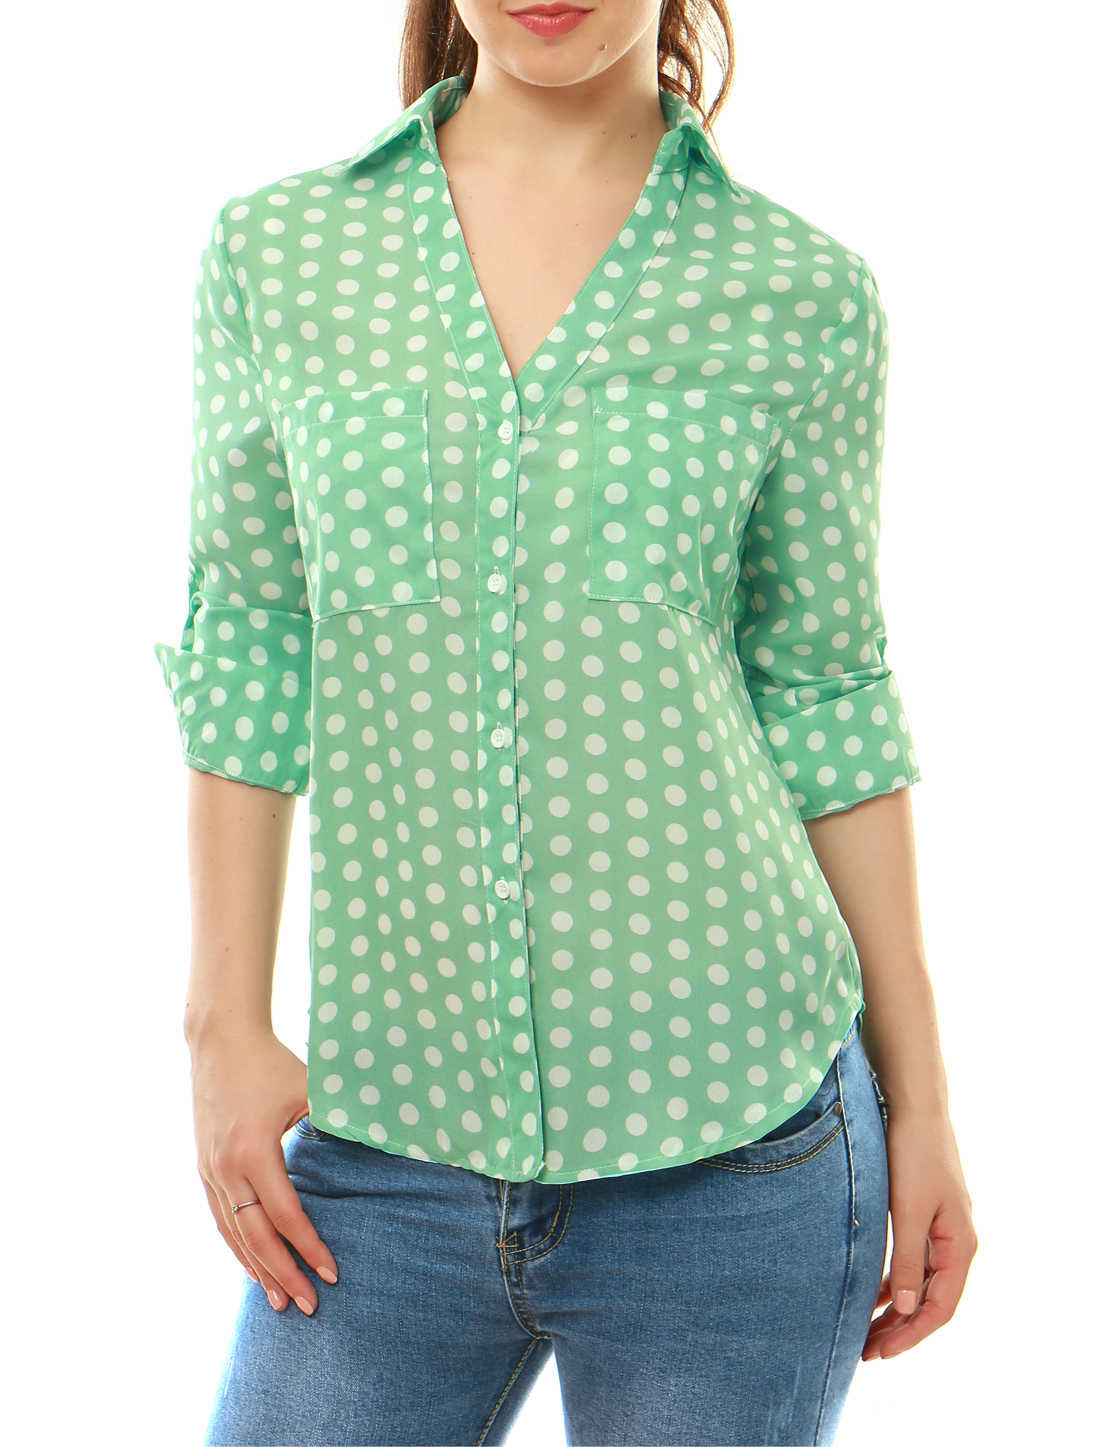 Women Polka Dots Point Collar Convertible Sleeve Shirt Green M